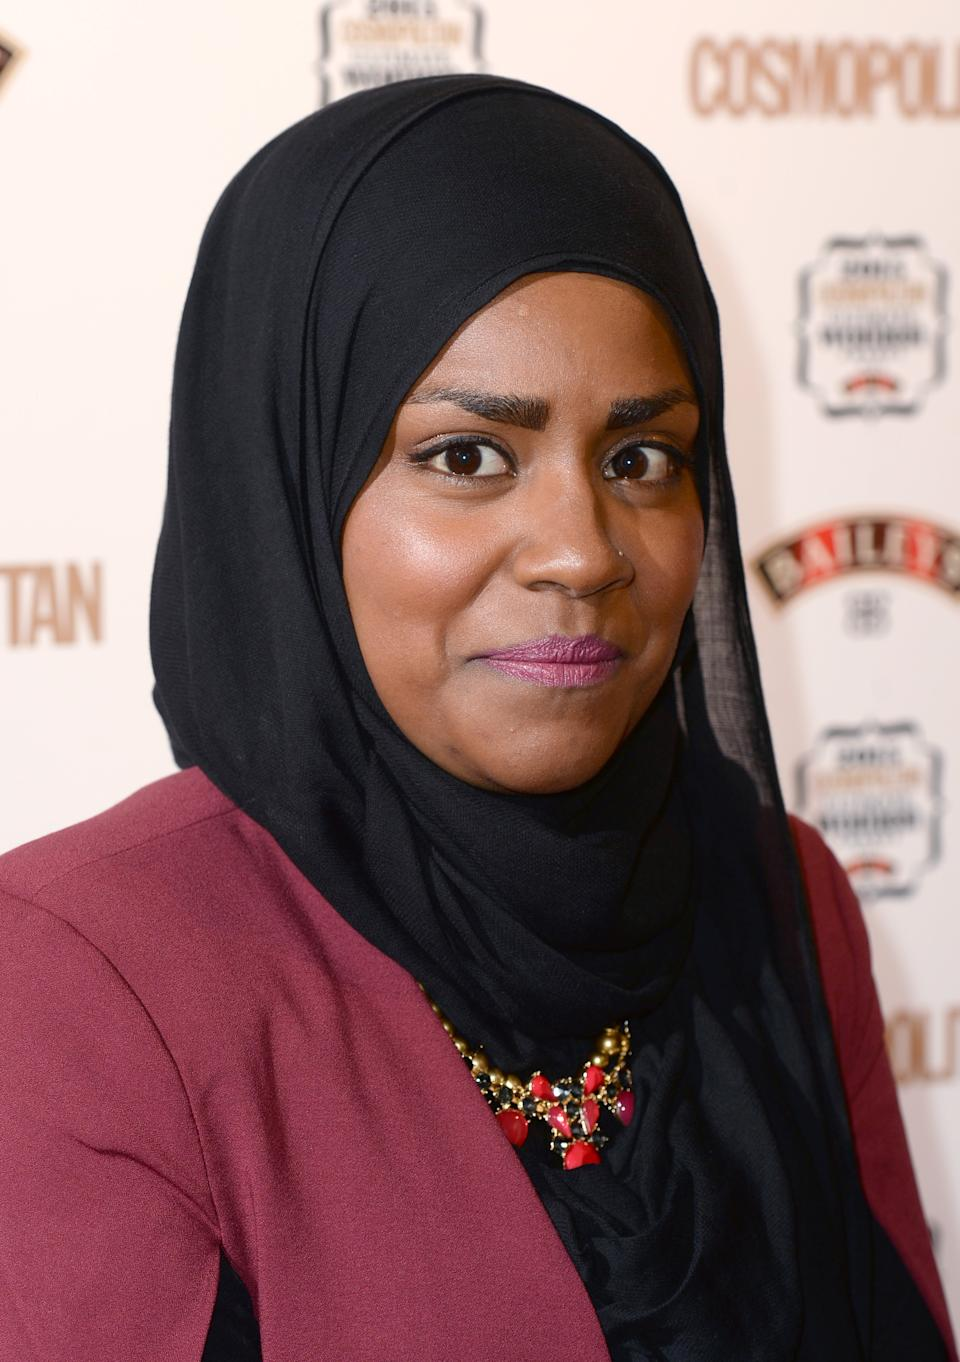 Nadiya Hussein arriving at the Cosmopolitan Ultimate Women of the Year Awards at One Mayfair, London. Photo credit should read: Doug Peters EMPICS Entertainment